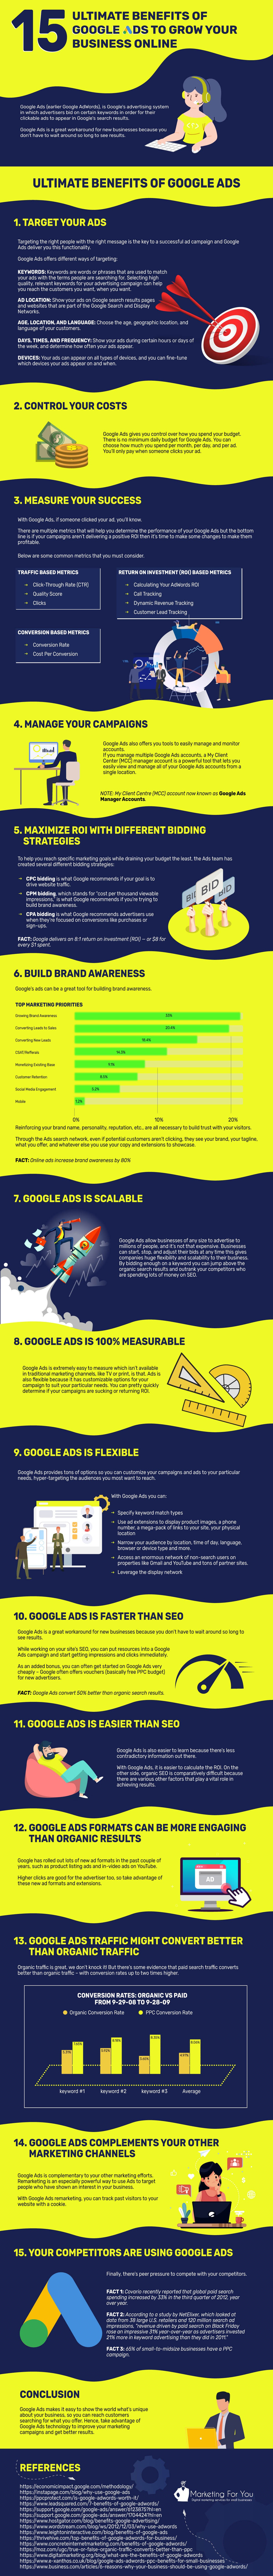 Ultimate Benefits of Google Ads to Grow Your Business Online #infographic